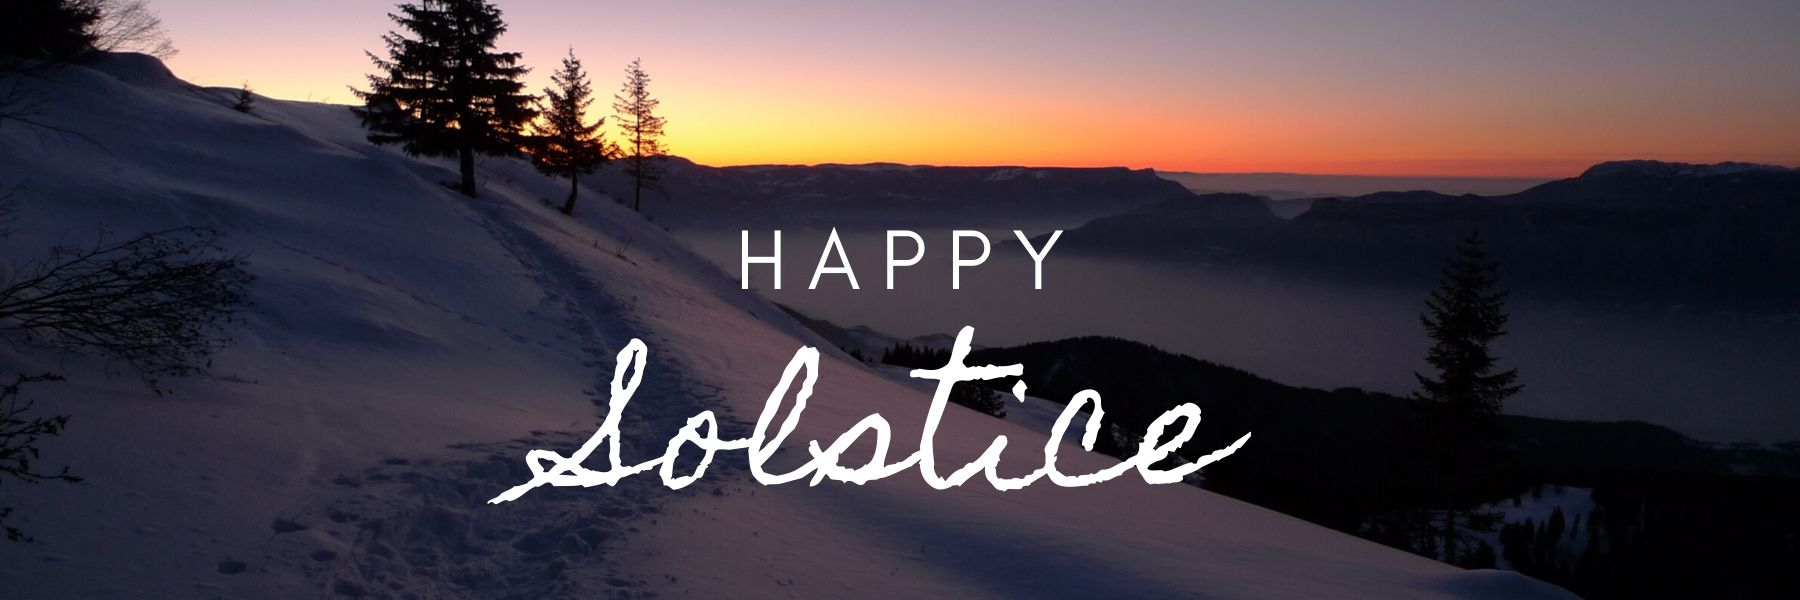 Happy Solstice to You - 2019